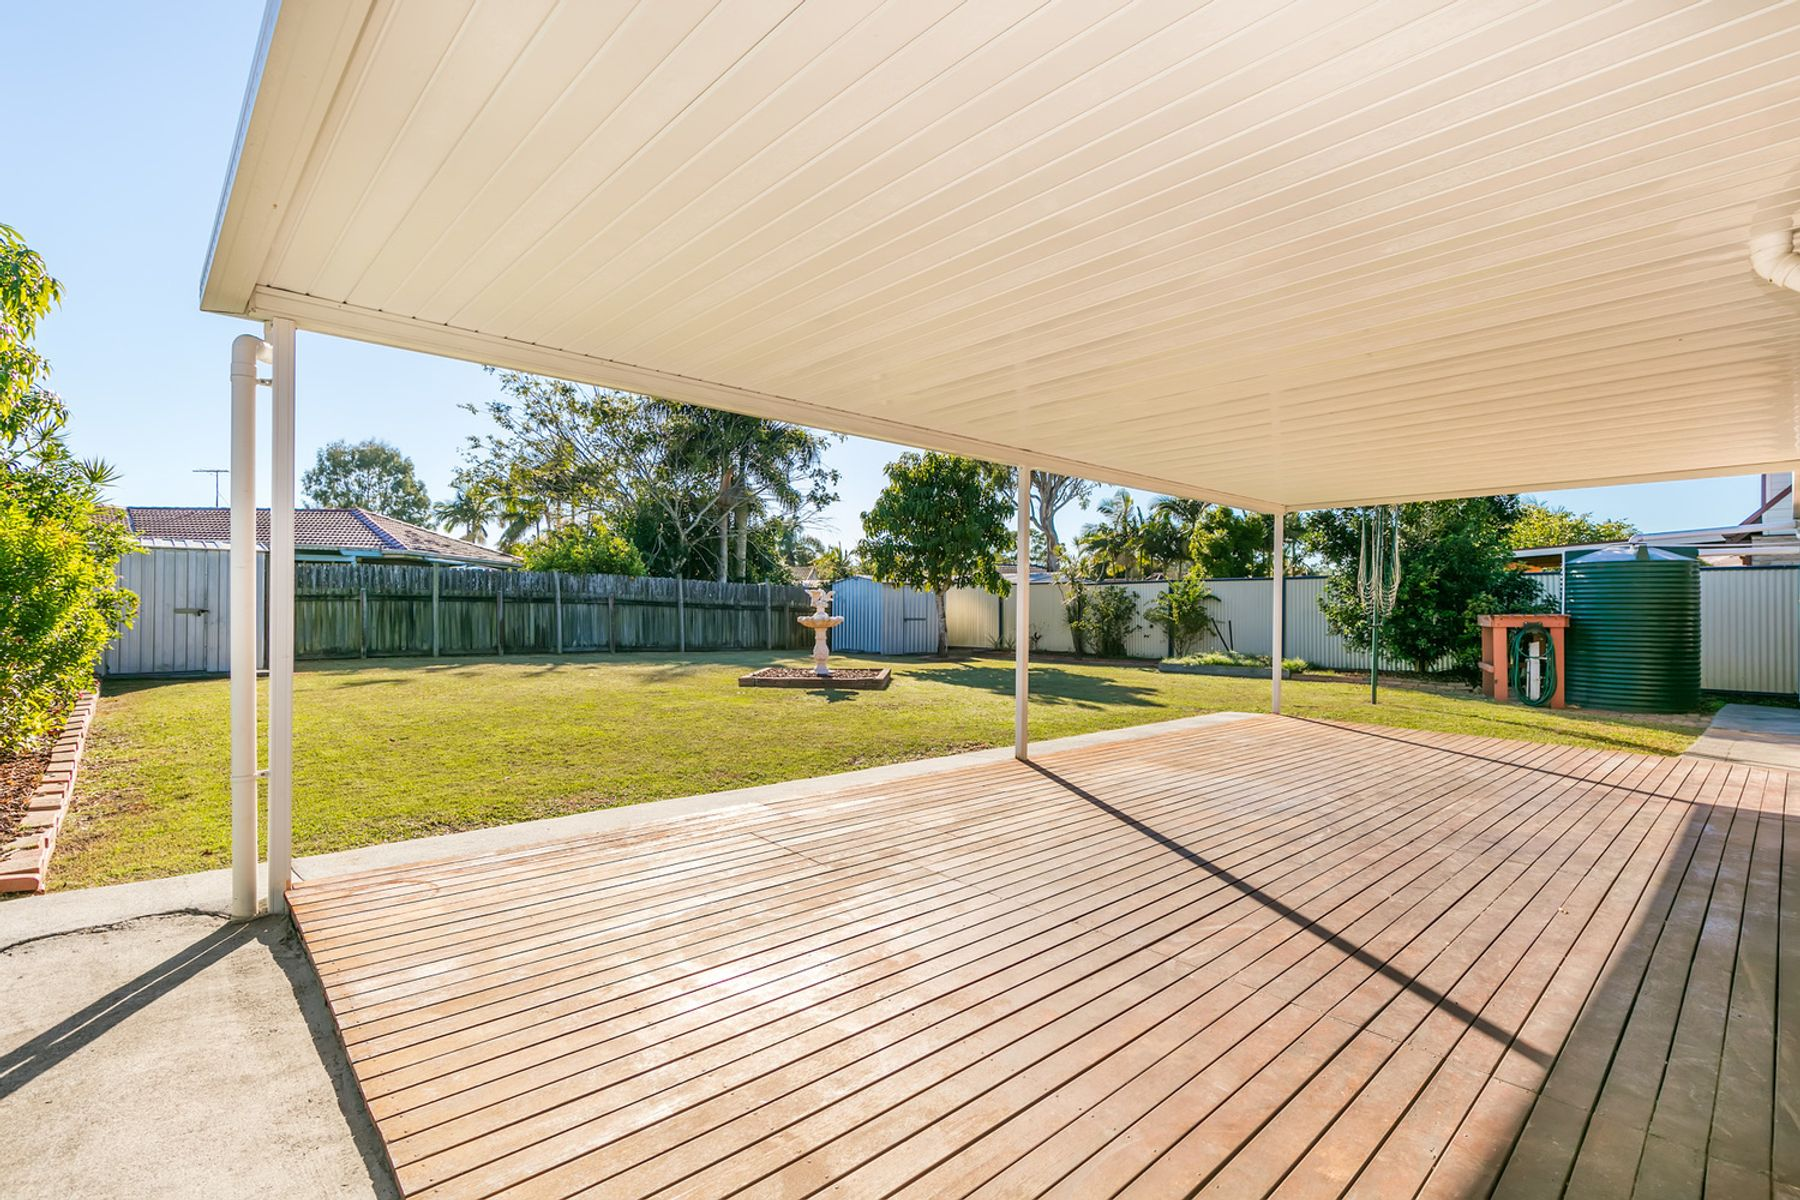 46 Torrens Street, Waterford West, QLD 4133